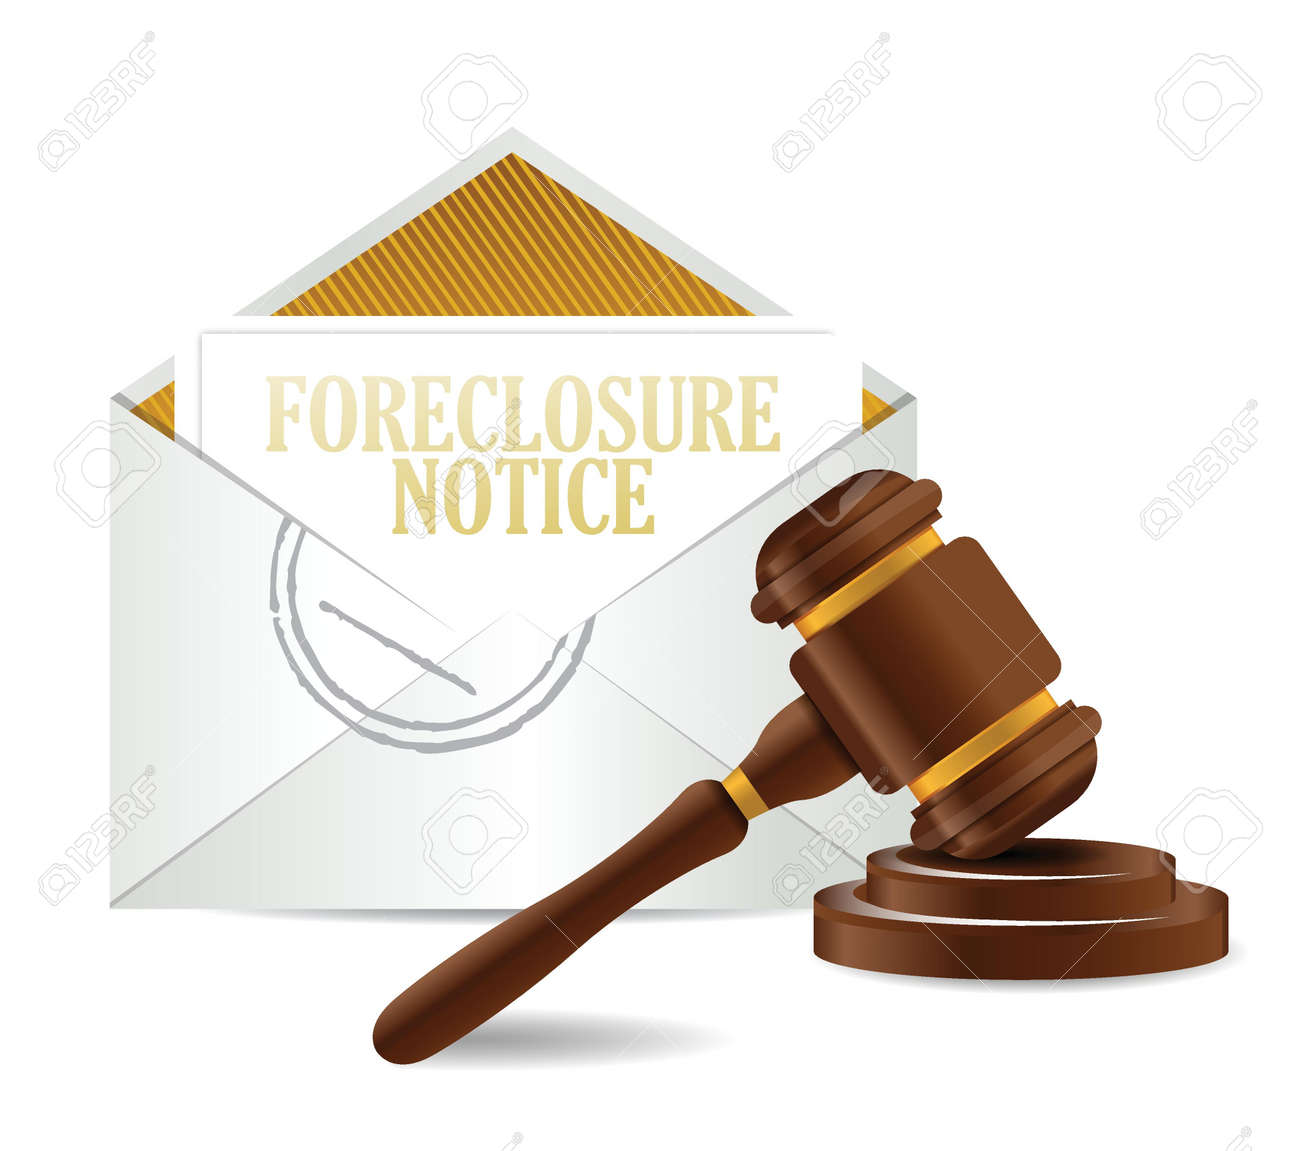 foreclosure notice document papers and gavel illustration design over a white background Stock Vector - 18593300